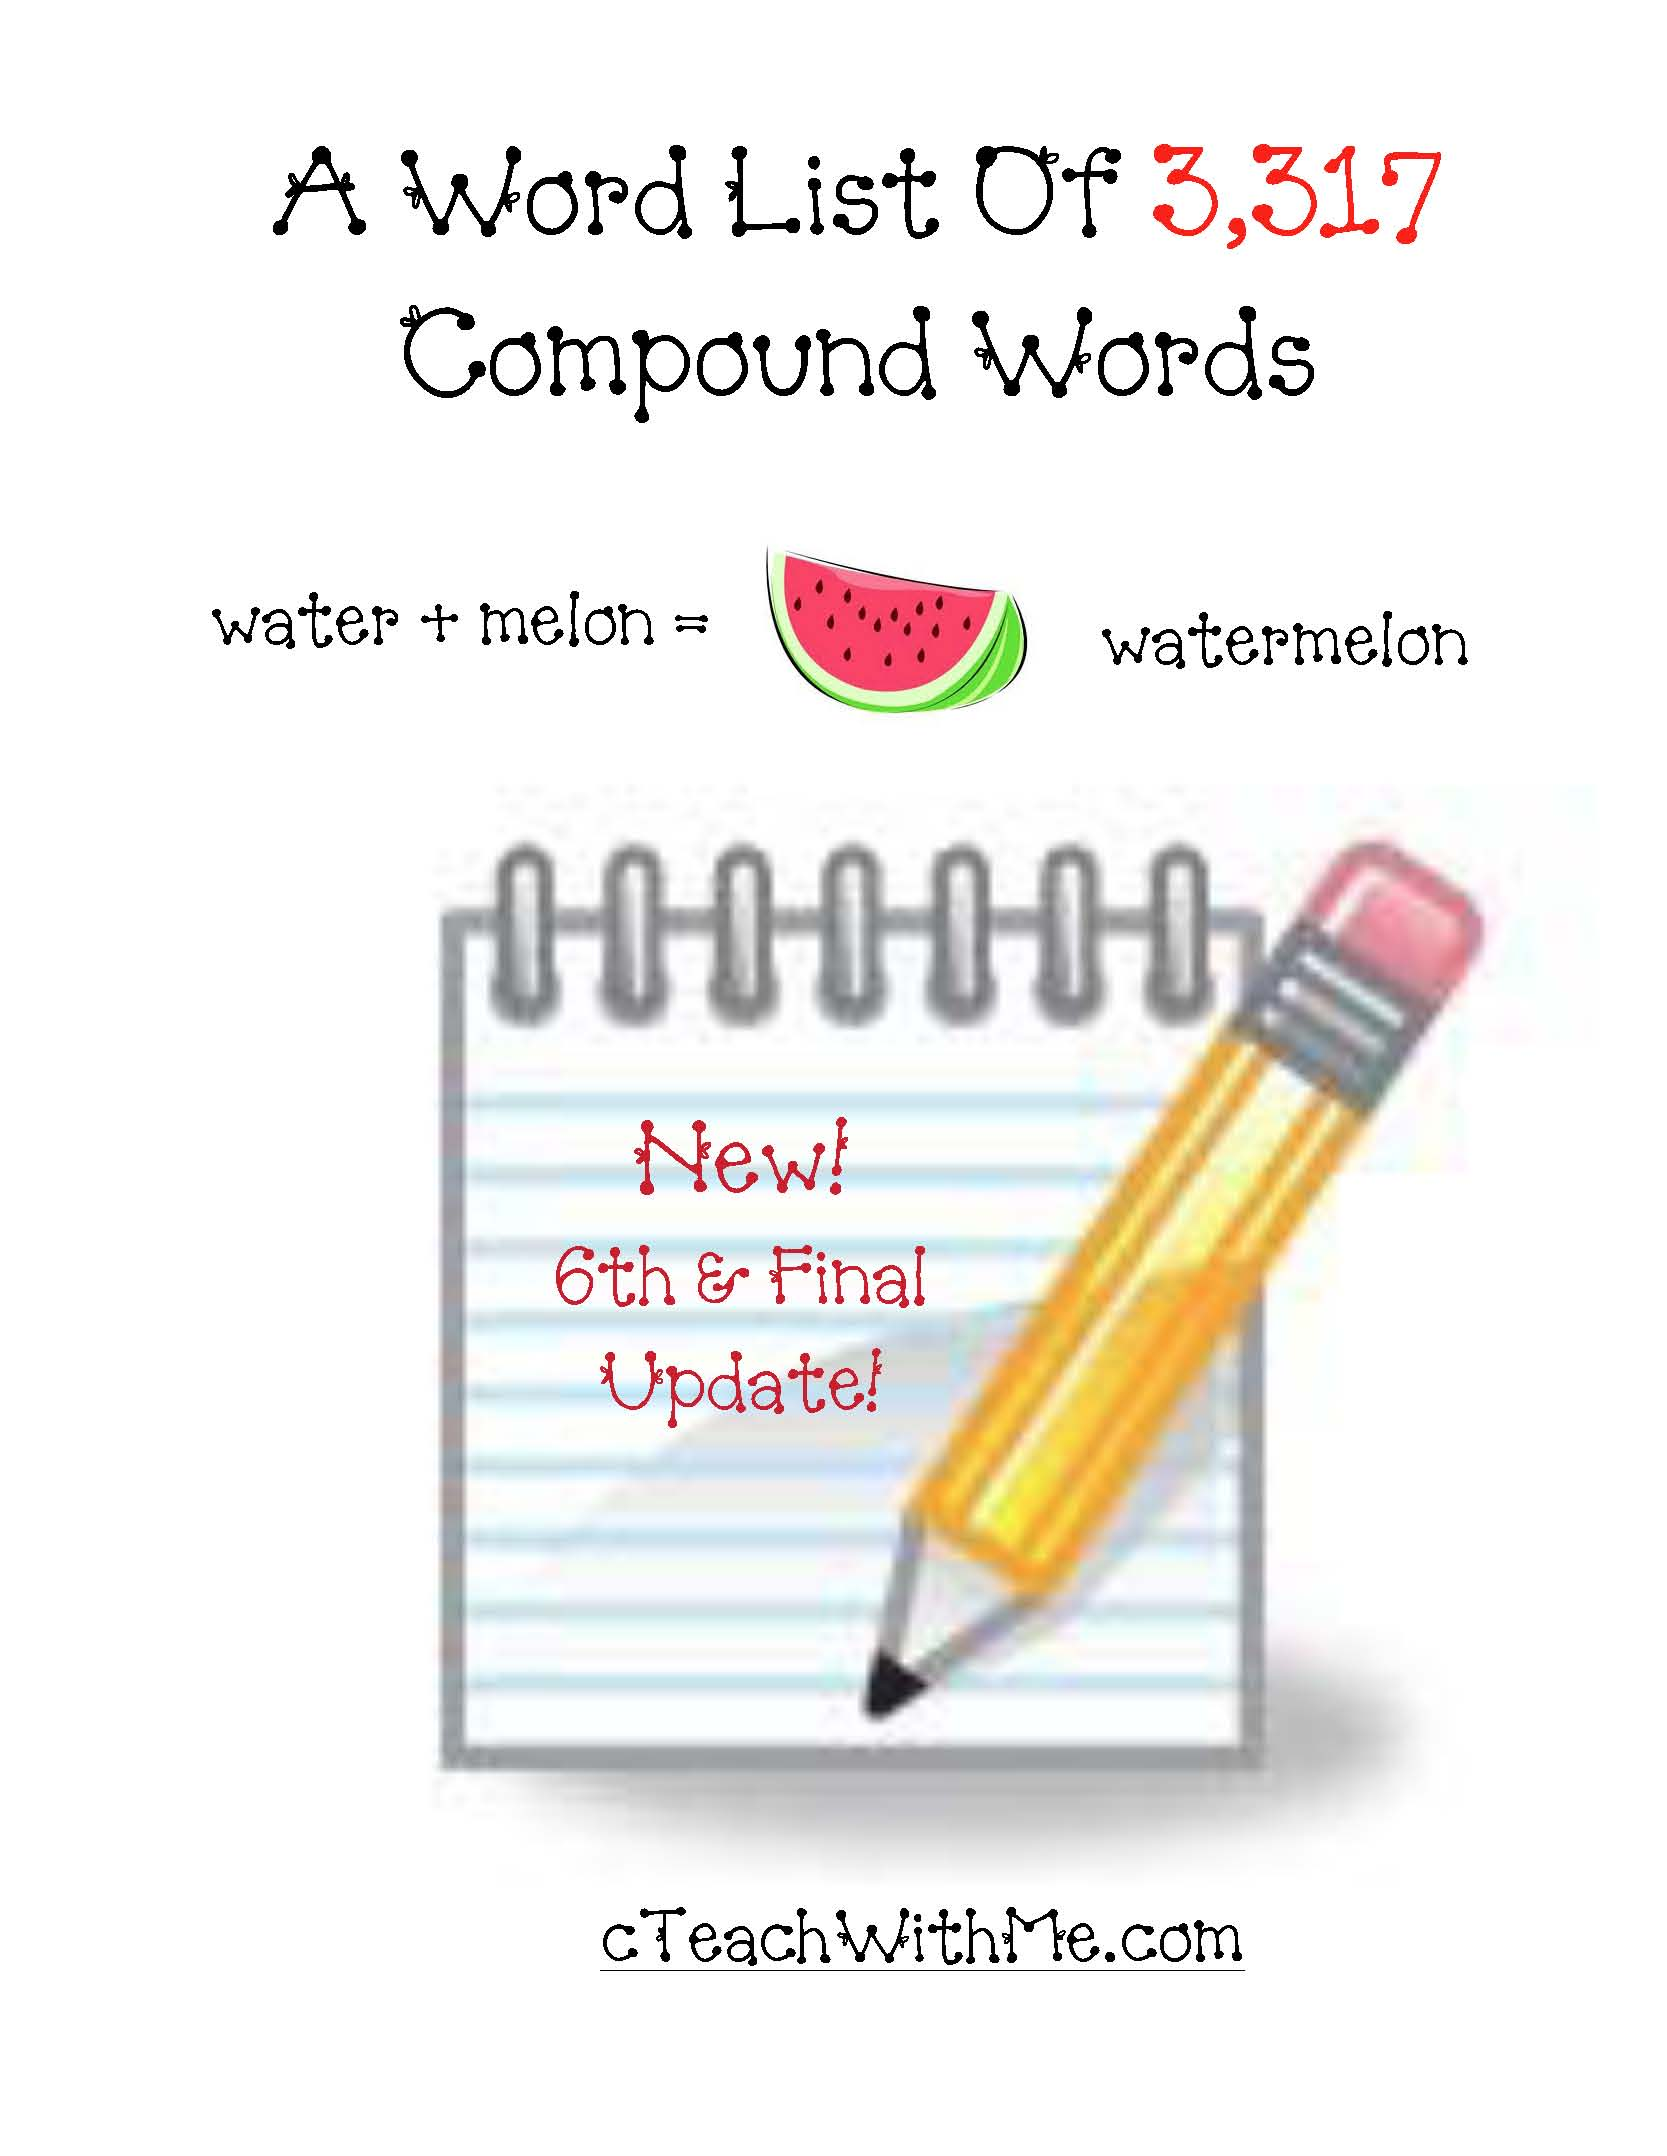 alphabetical list of 3,317 compound words, compound word activities, compound word dictionary, compound word poster, compound word list, list of compound words,